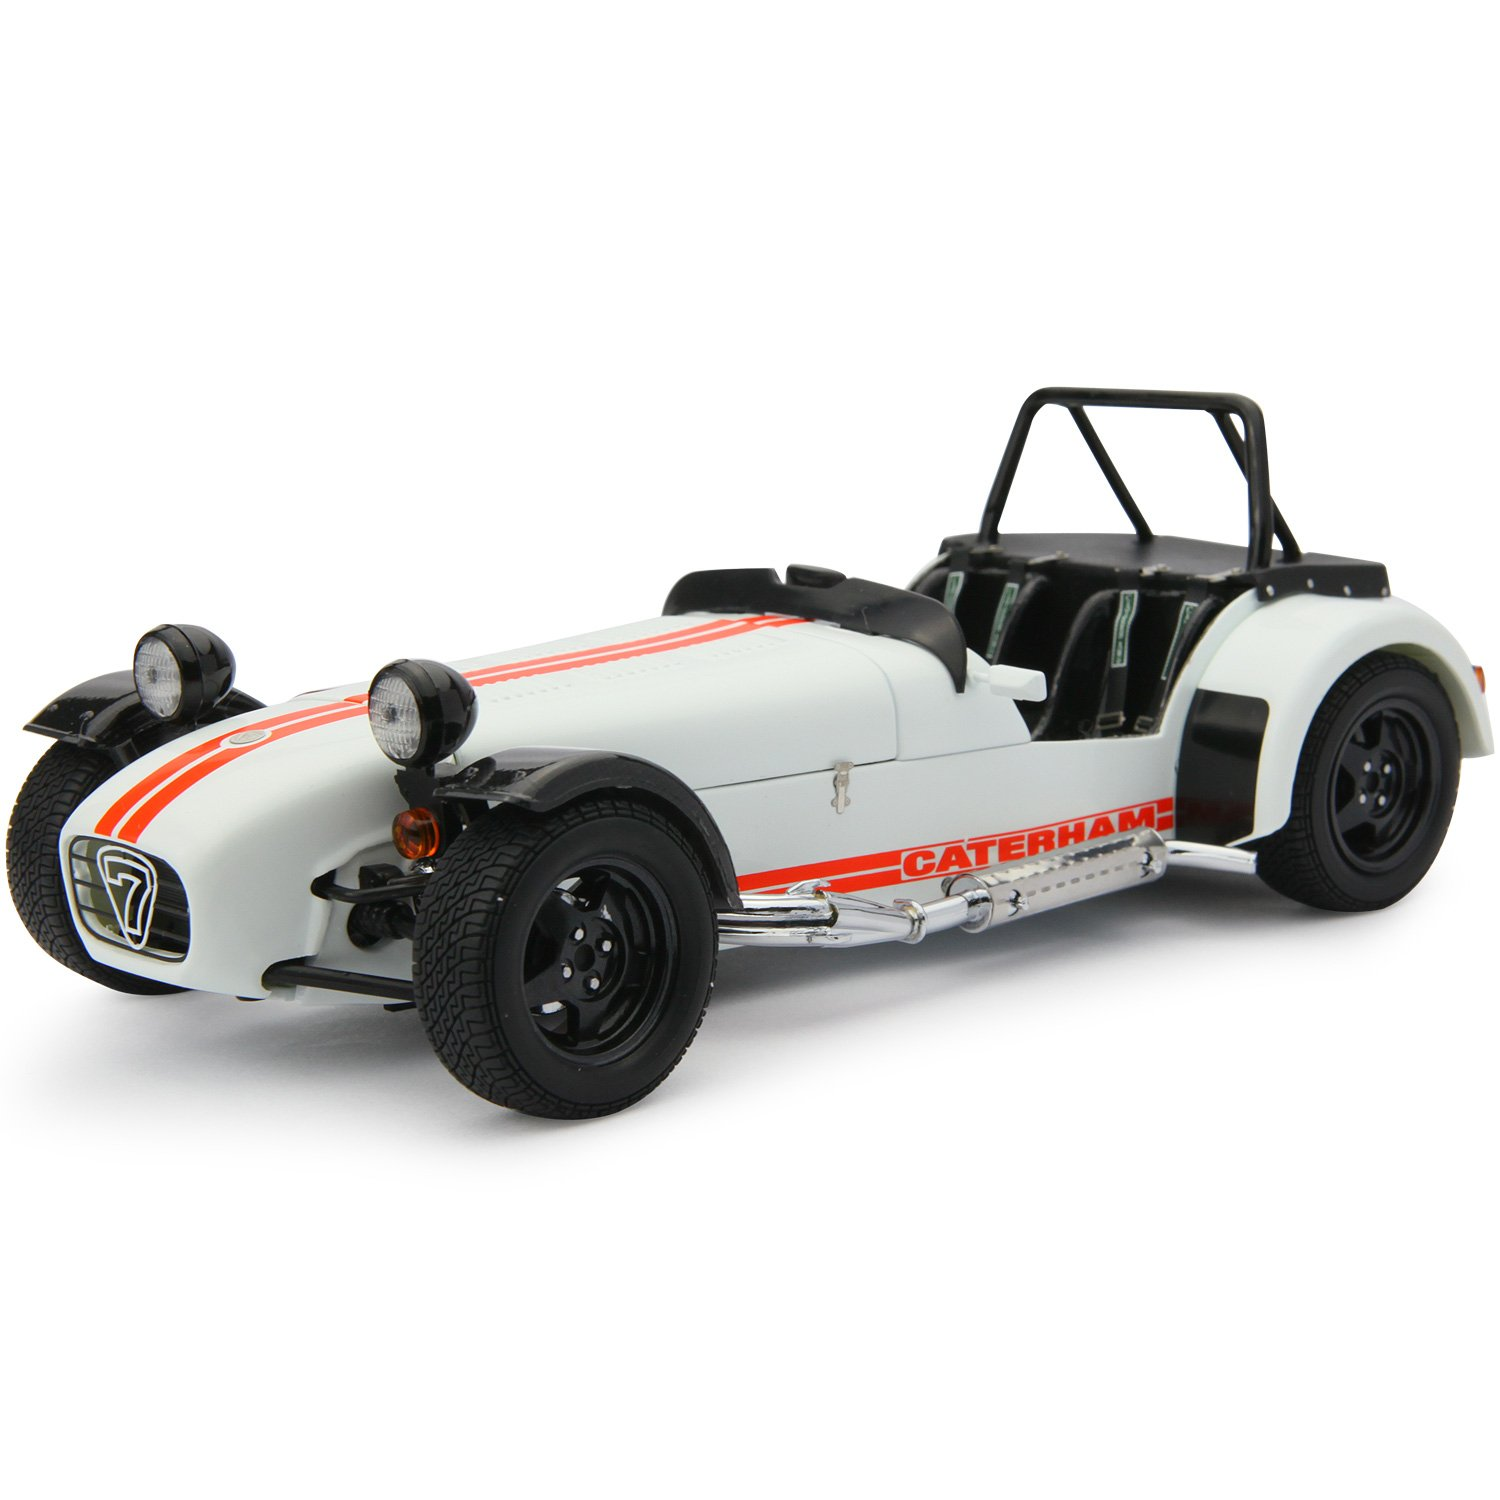 Used Caterham 7 For Sale: This Caterham Super Seven JPE Diecast Model Car Is T